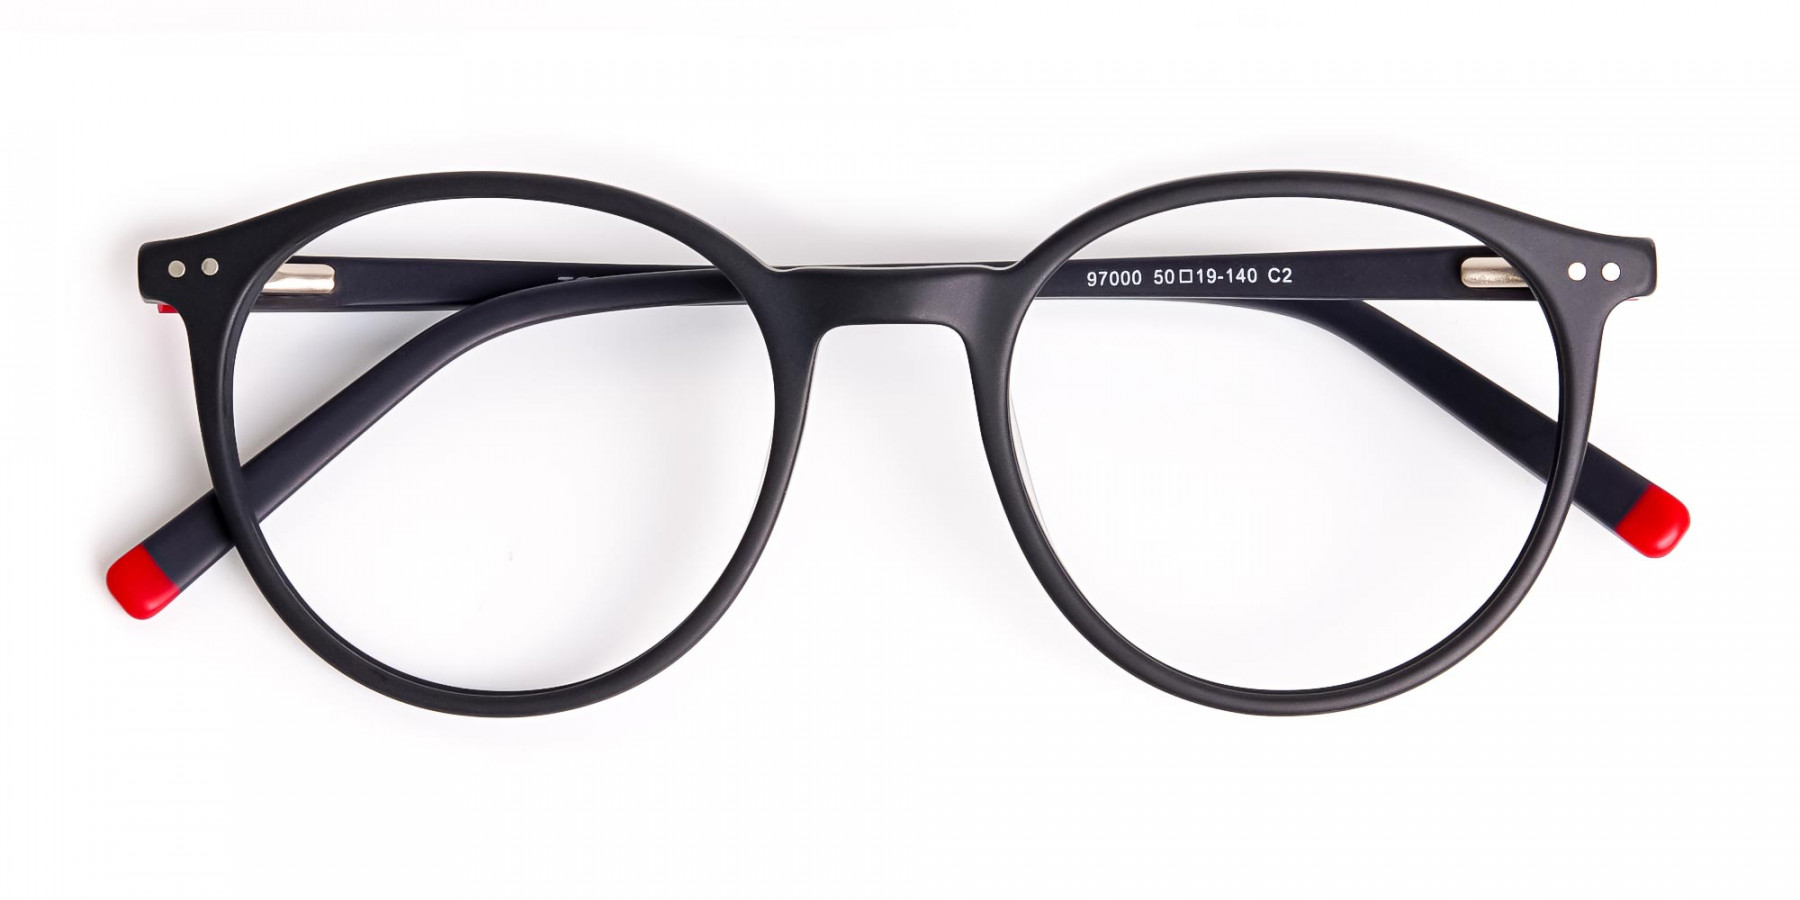 matte-black-and-red-round-glasses-frames-1